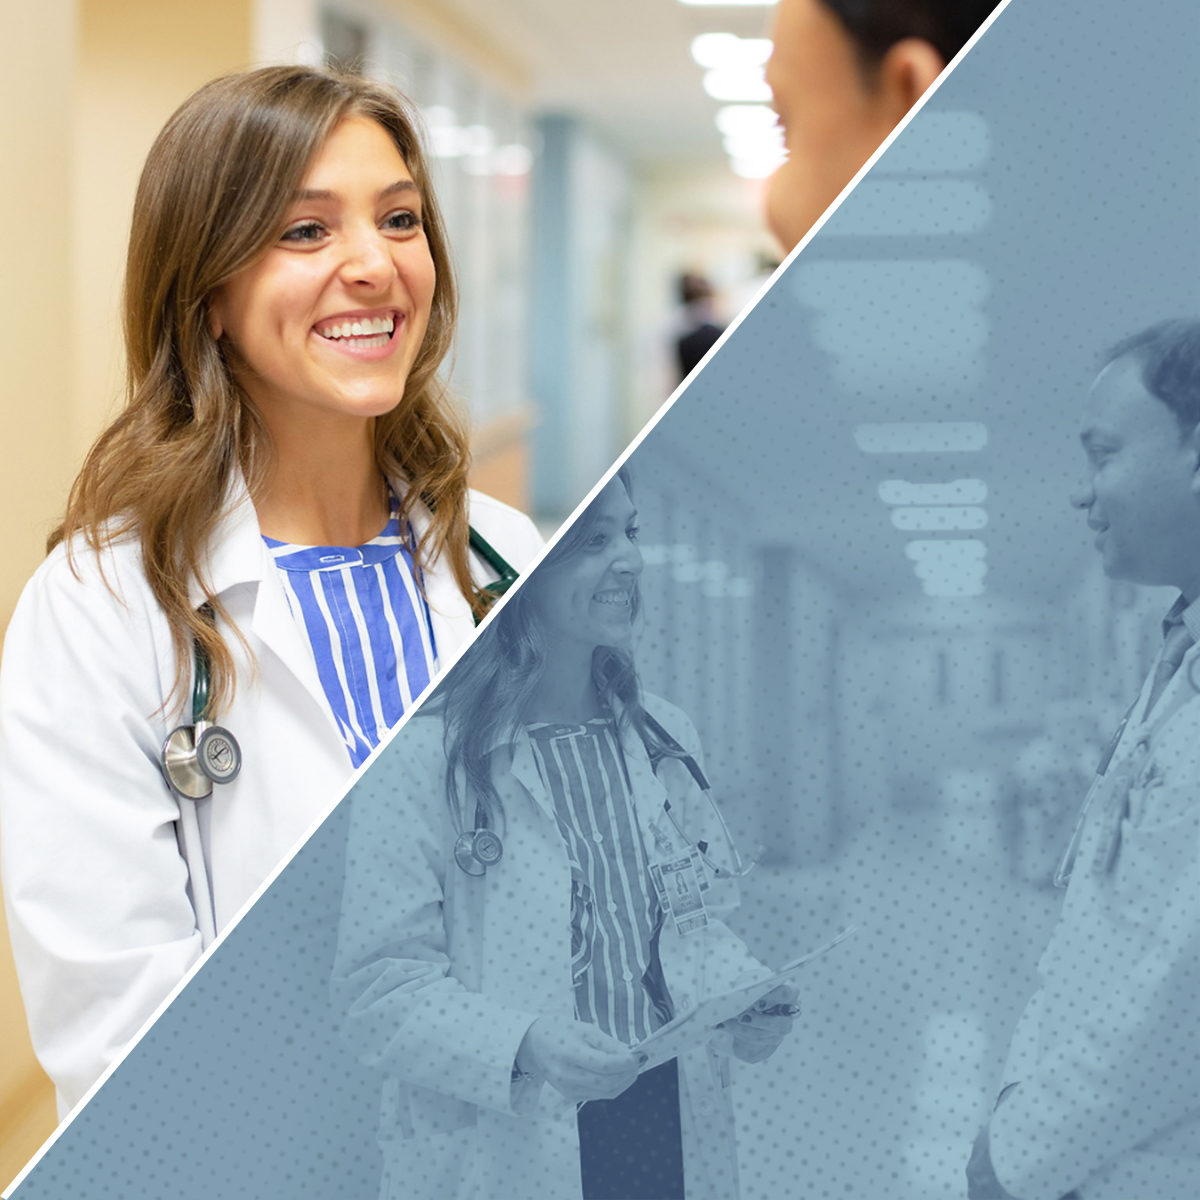 Nurse Practitioner vs. Doctor: Comparing These Health Care Provider Roles Square